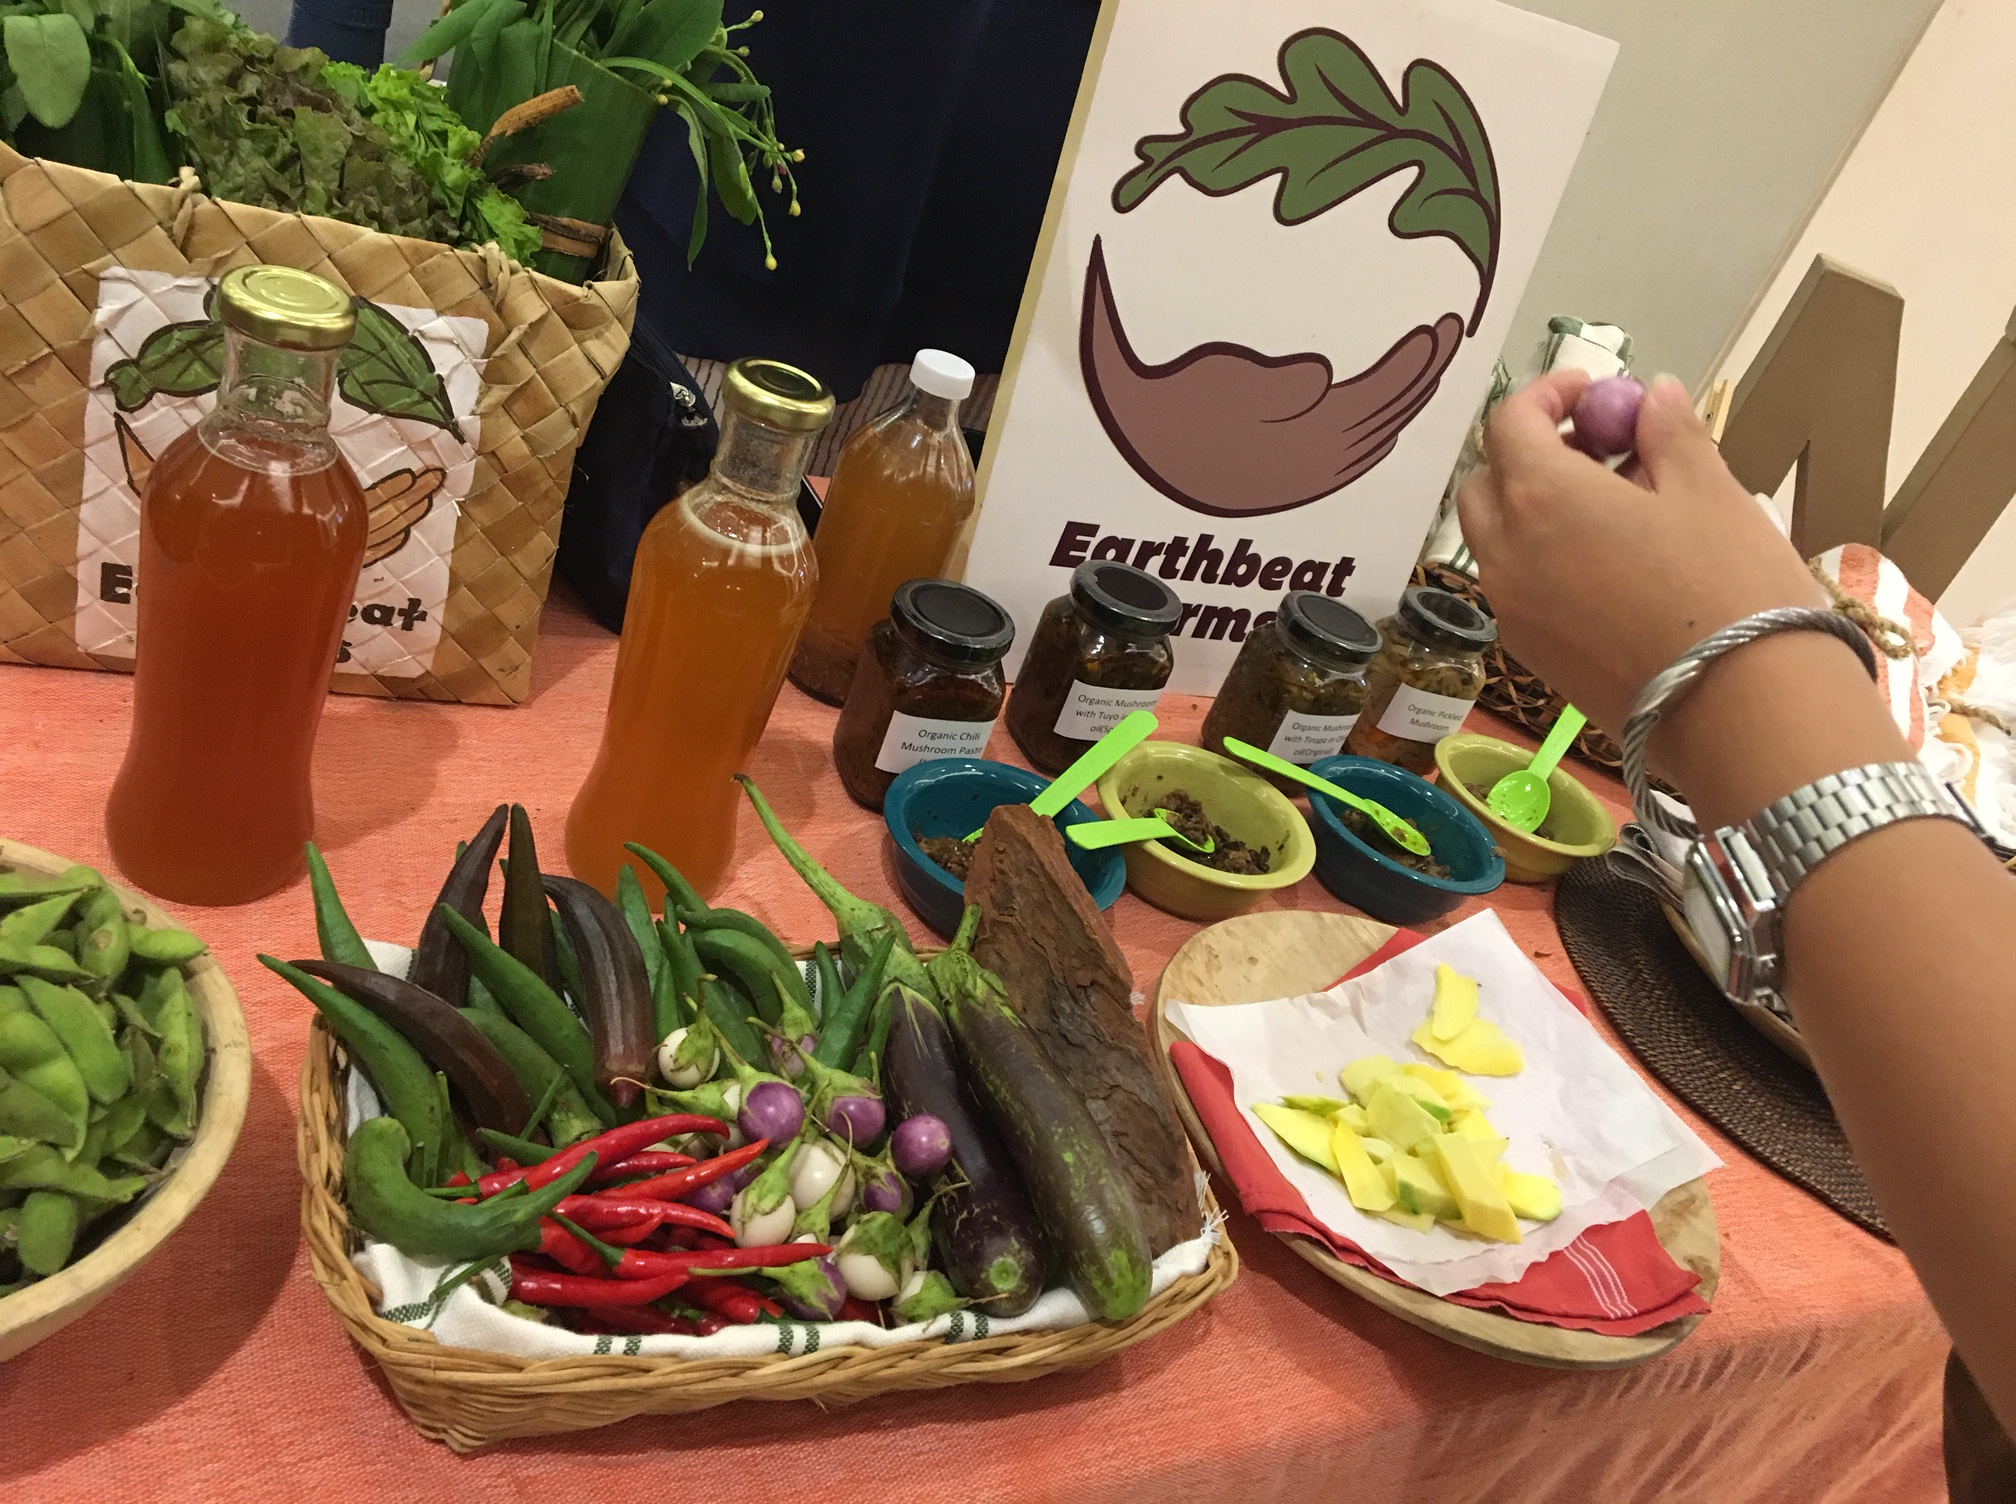 Earthbeat_Farms_Display